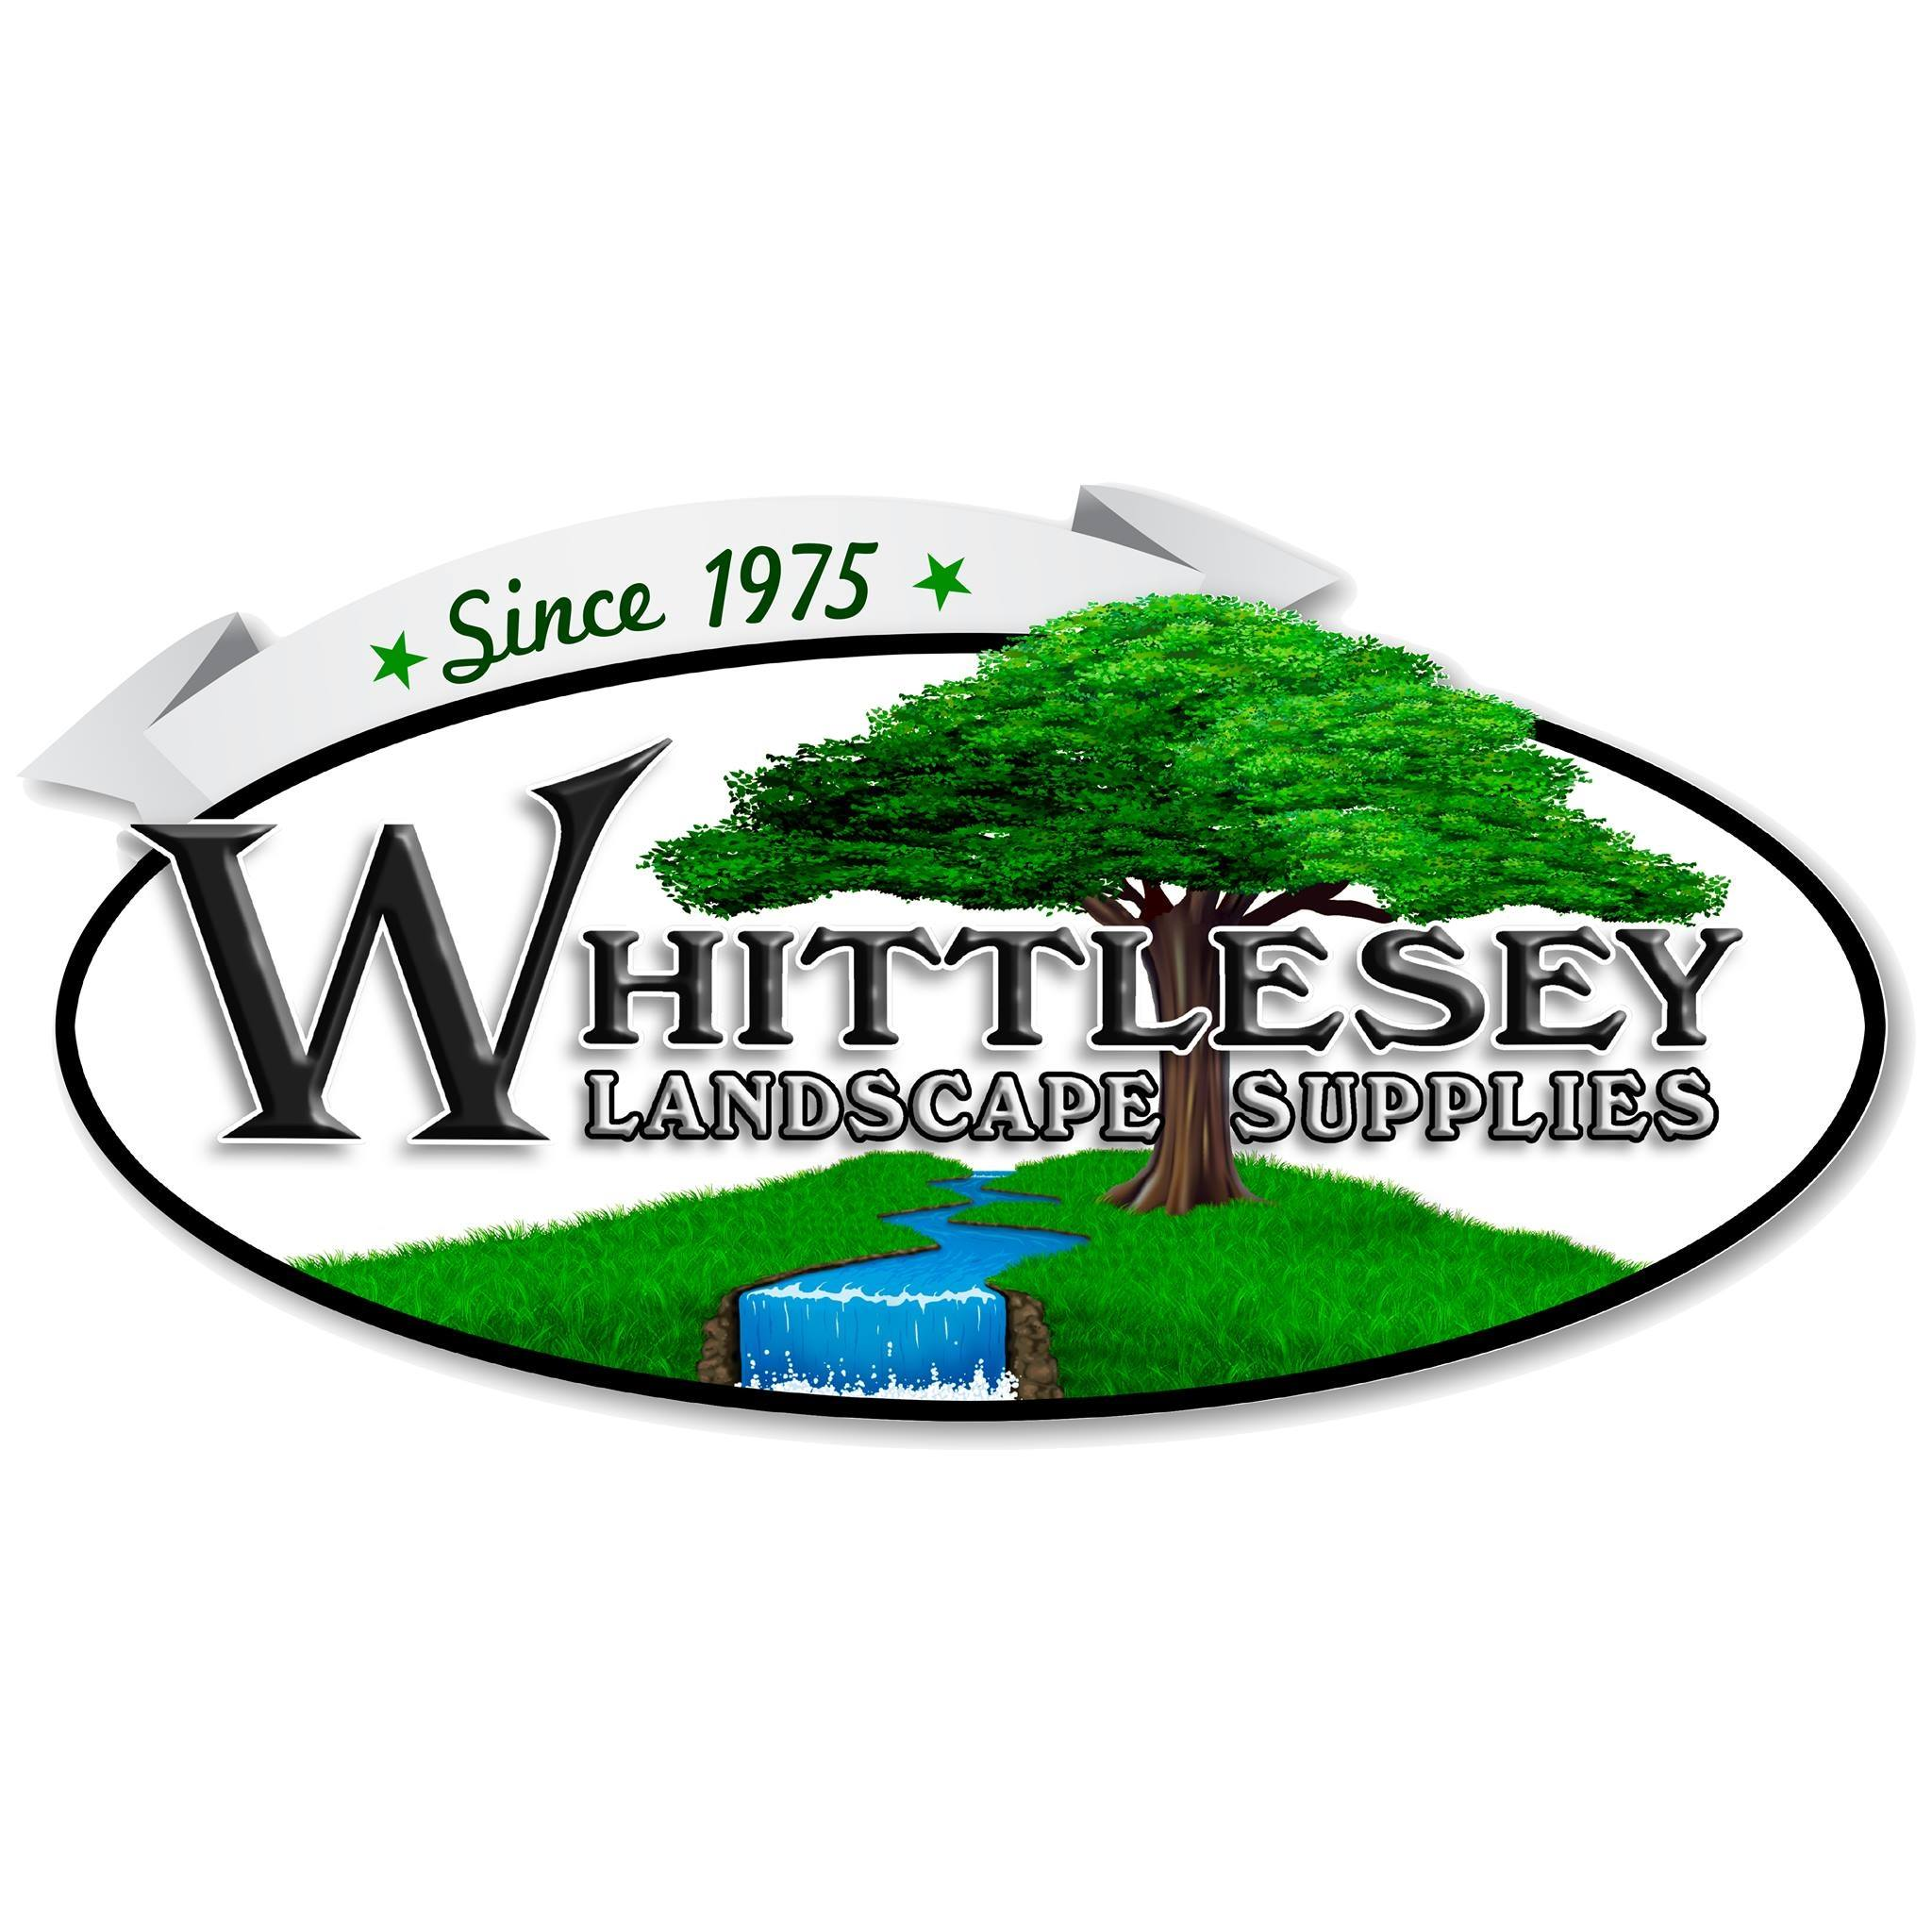 Business logo of Whittlesey Landscape Supplies